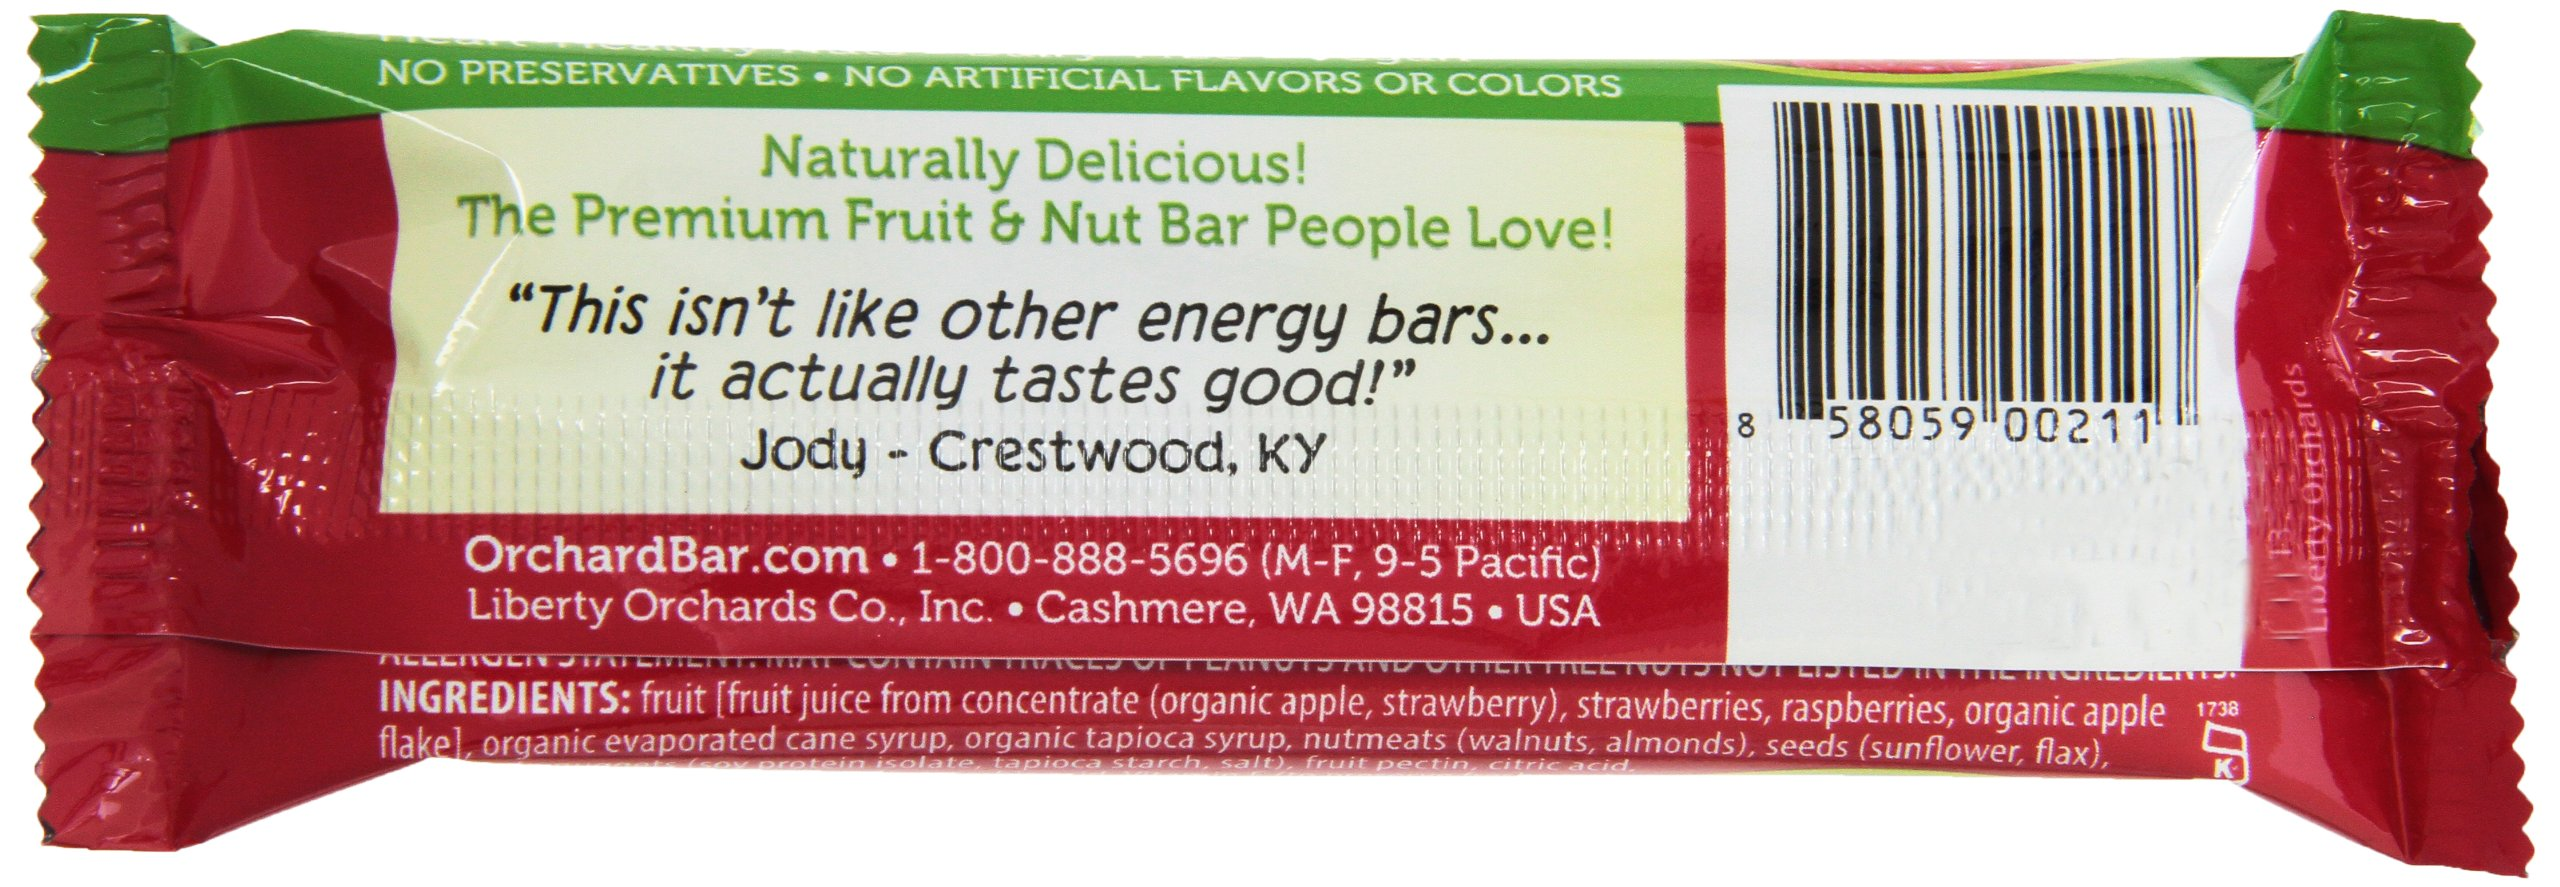 Orchard Bars Fruit and Nut Bar, Strawberry/Raspberry/Walnut, 1.4 Ounce (Pack of 12) by Orchard Bars (Image #4)